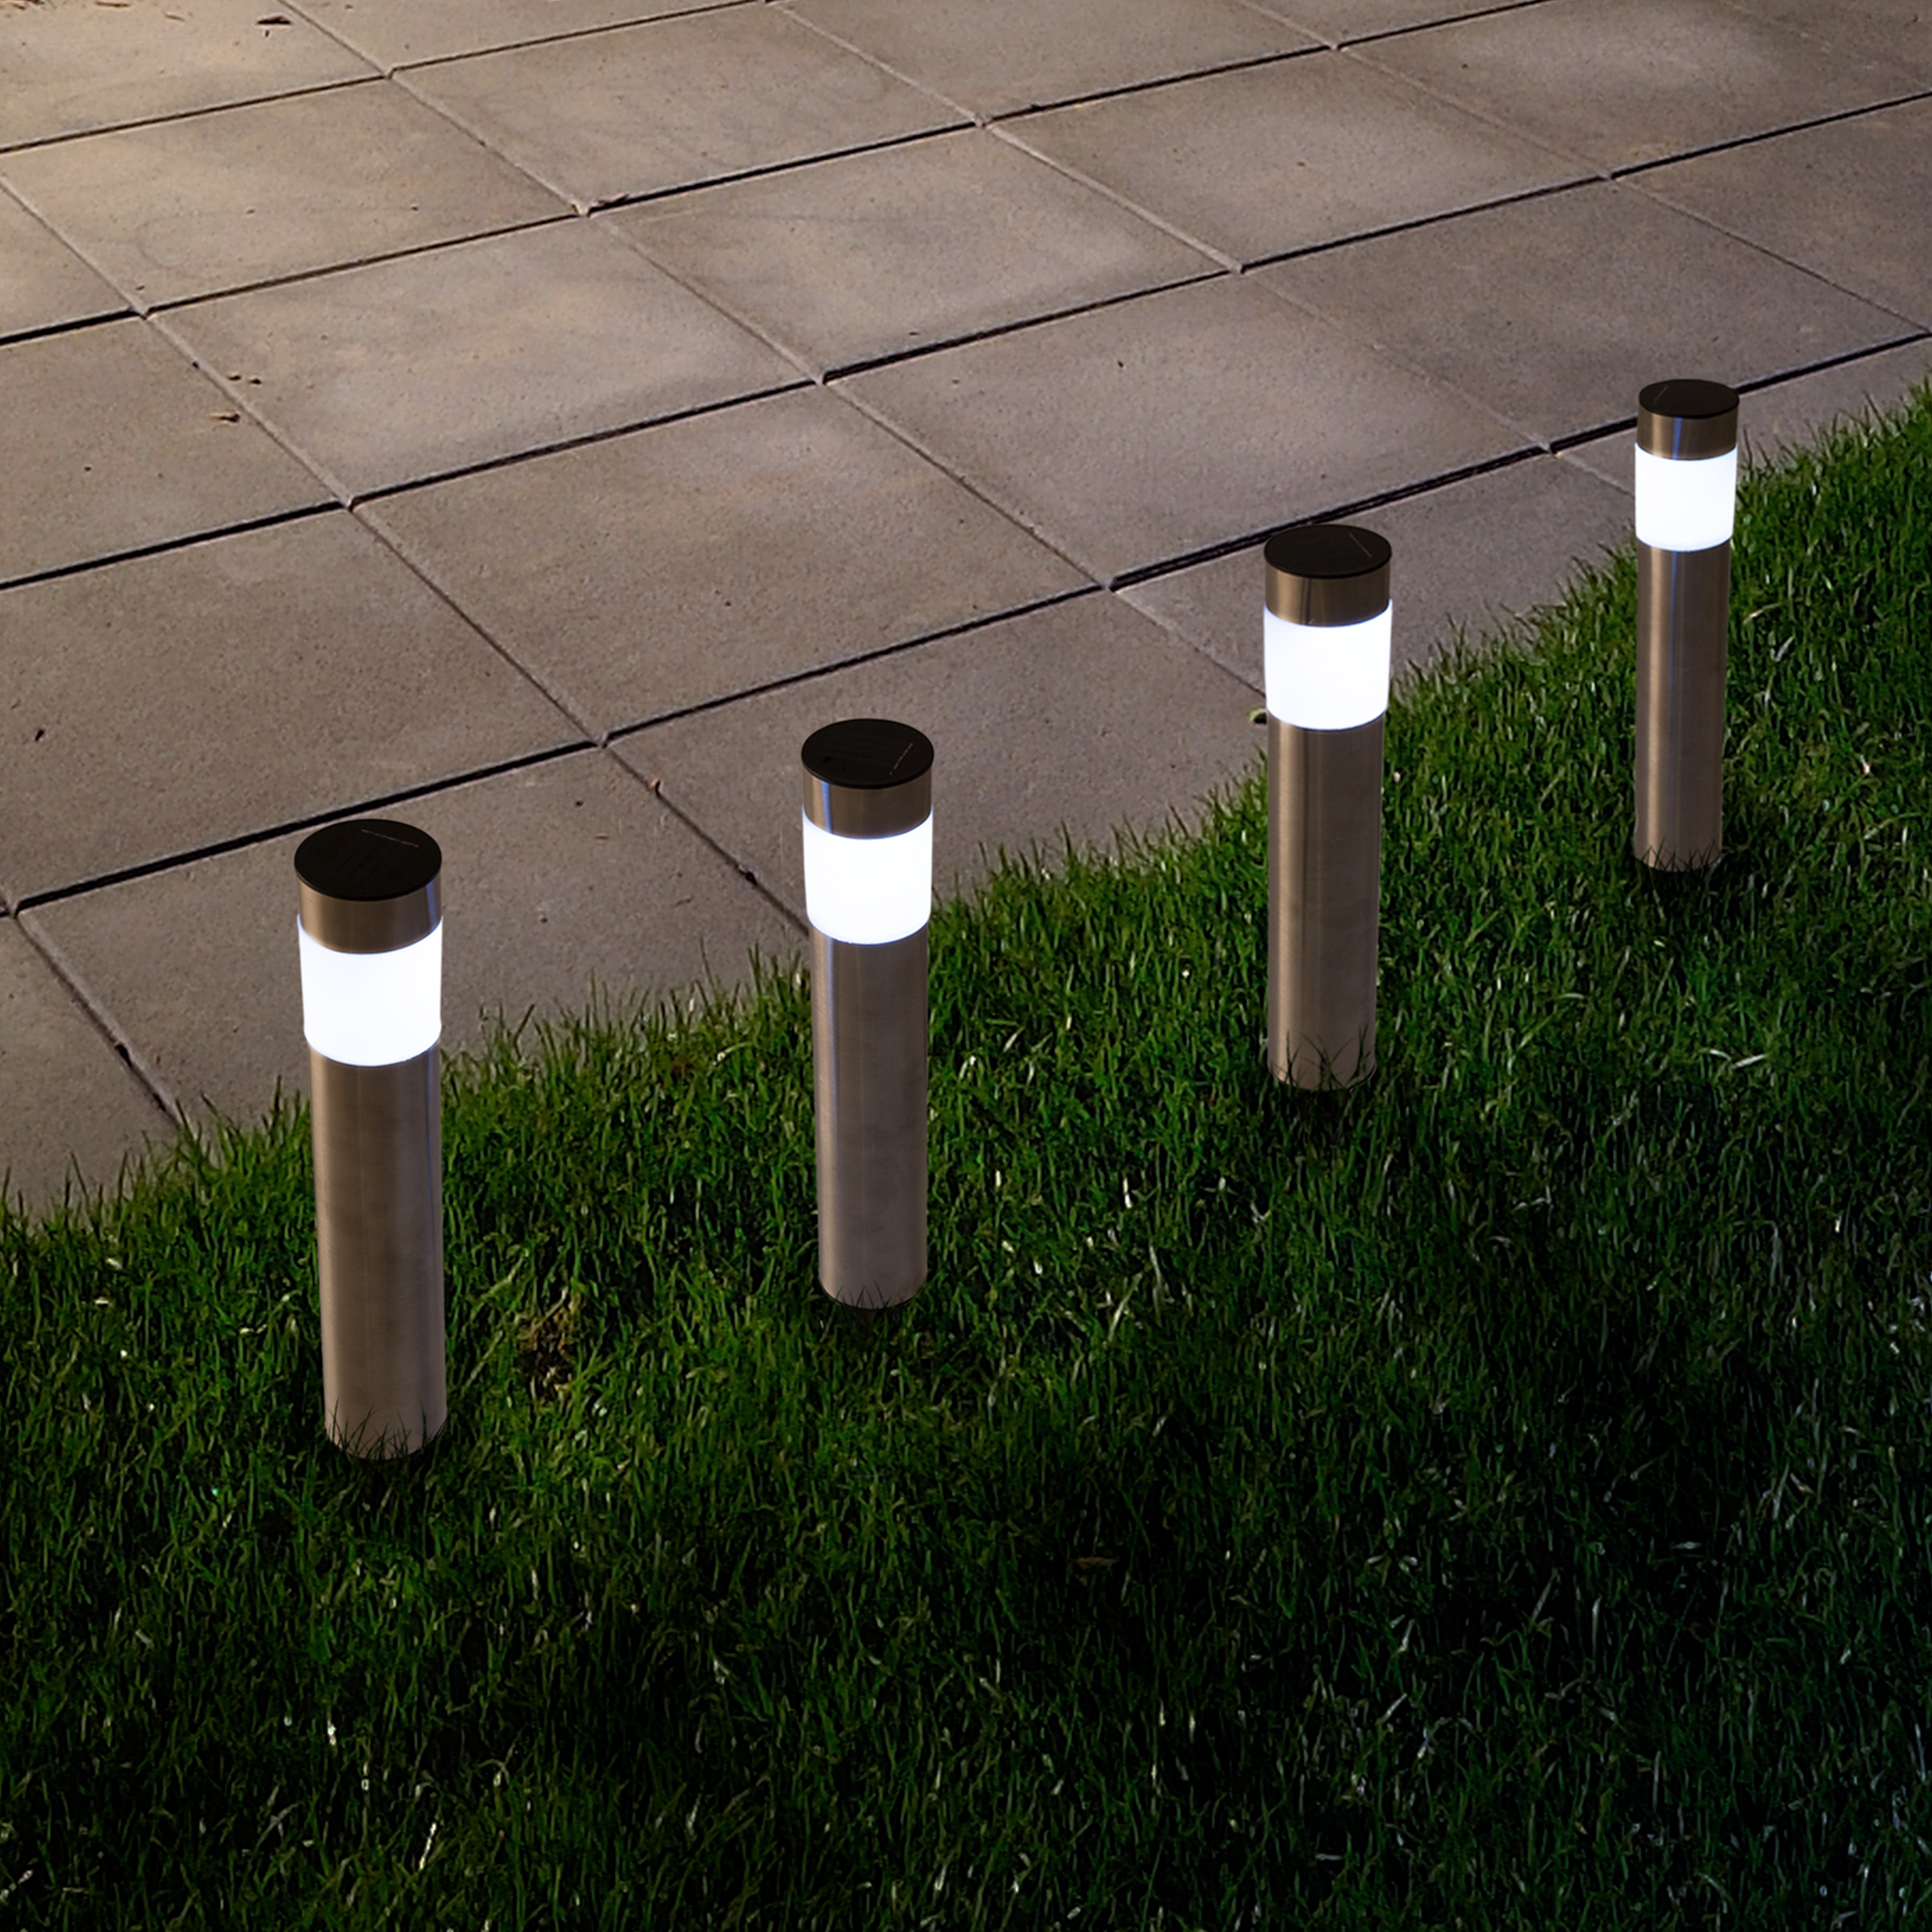 Solar Outdoor LED Light, Battery Operated Stainless Steel Path Walkway Lights for Landscape, Patio, Driveways and Pathways by Pure Garden